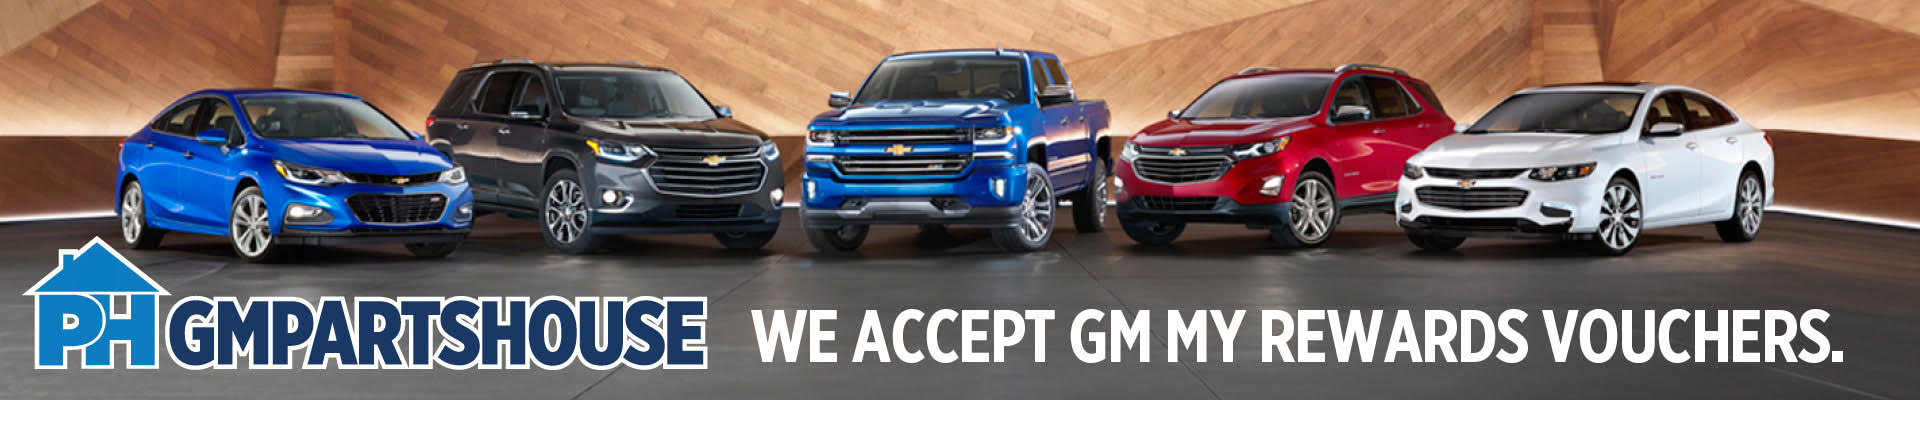 GM Parts House Banner 1